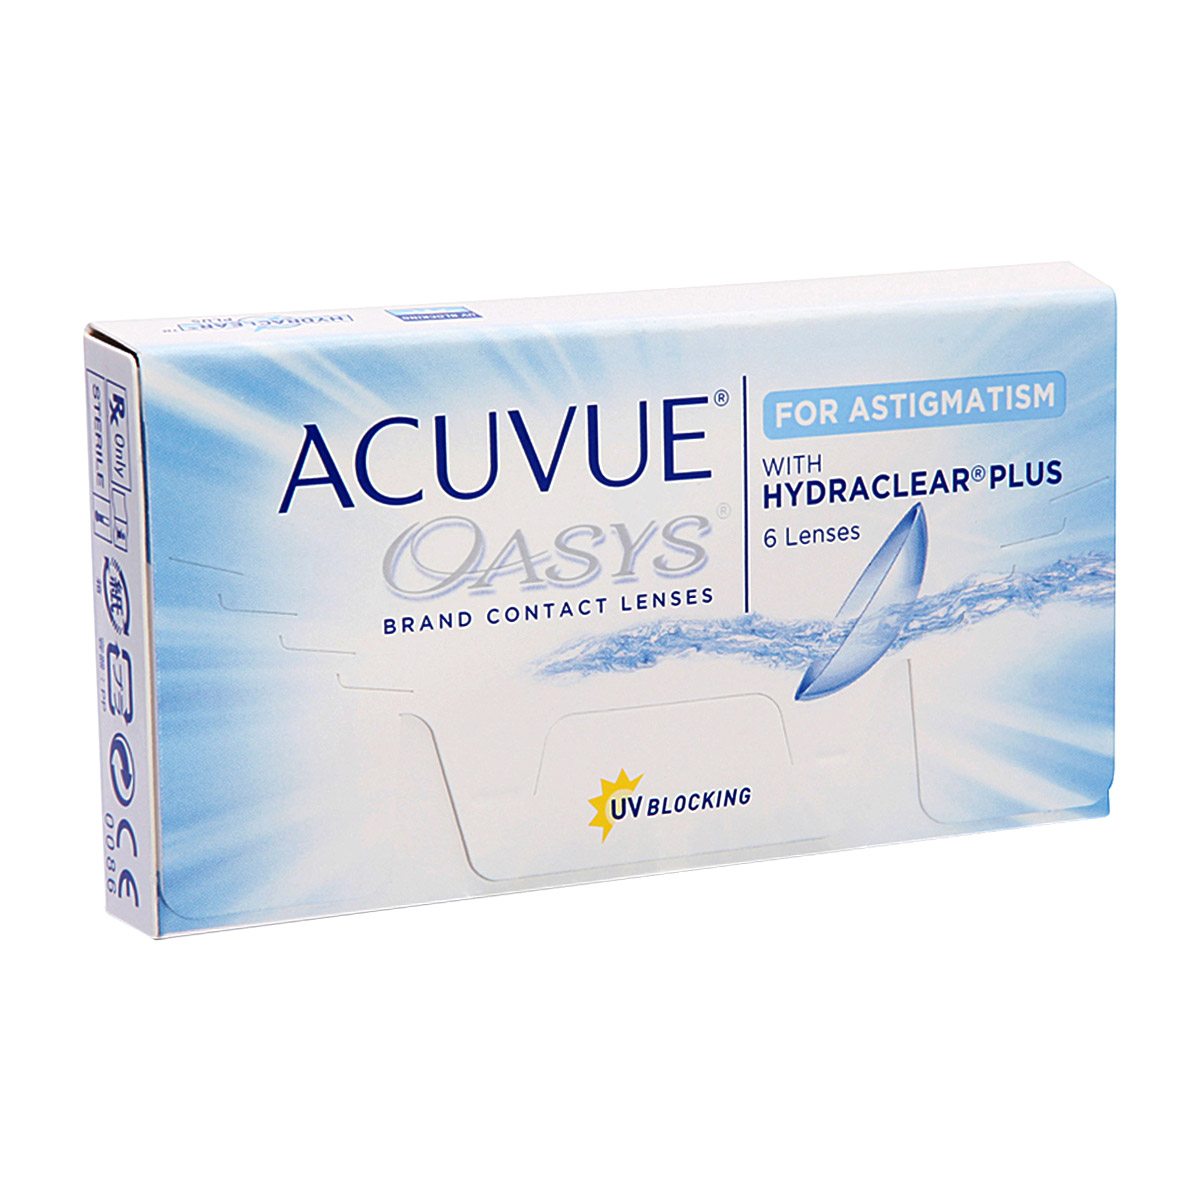 Acuvue Oasys for Astigmatism 6 lenses